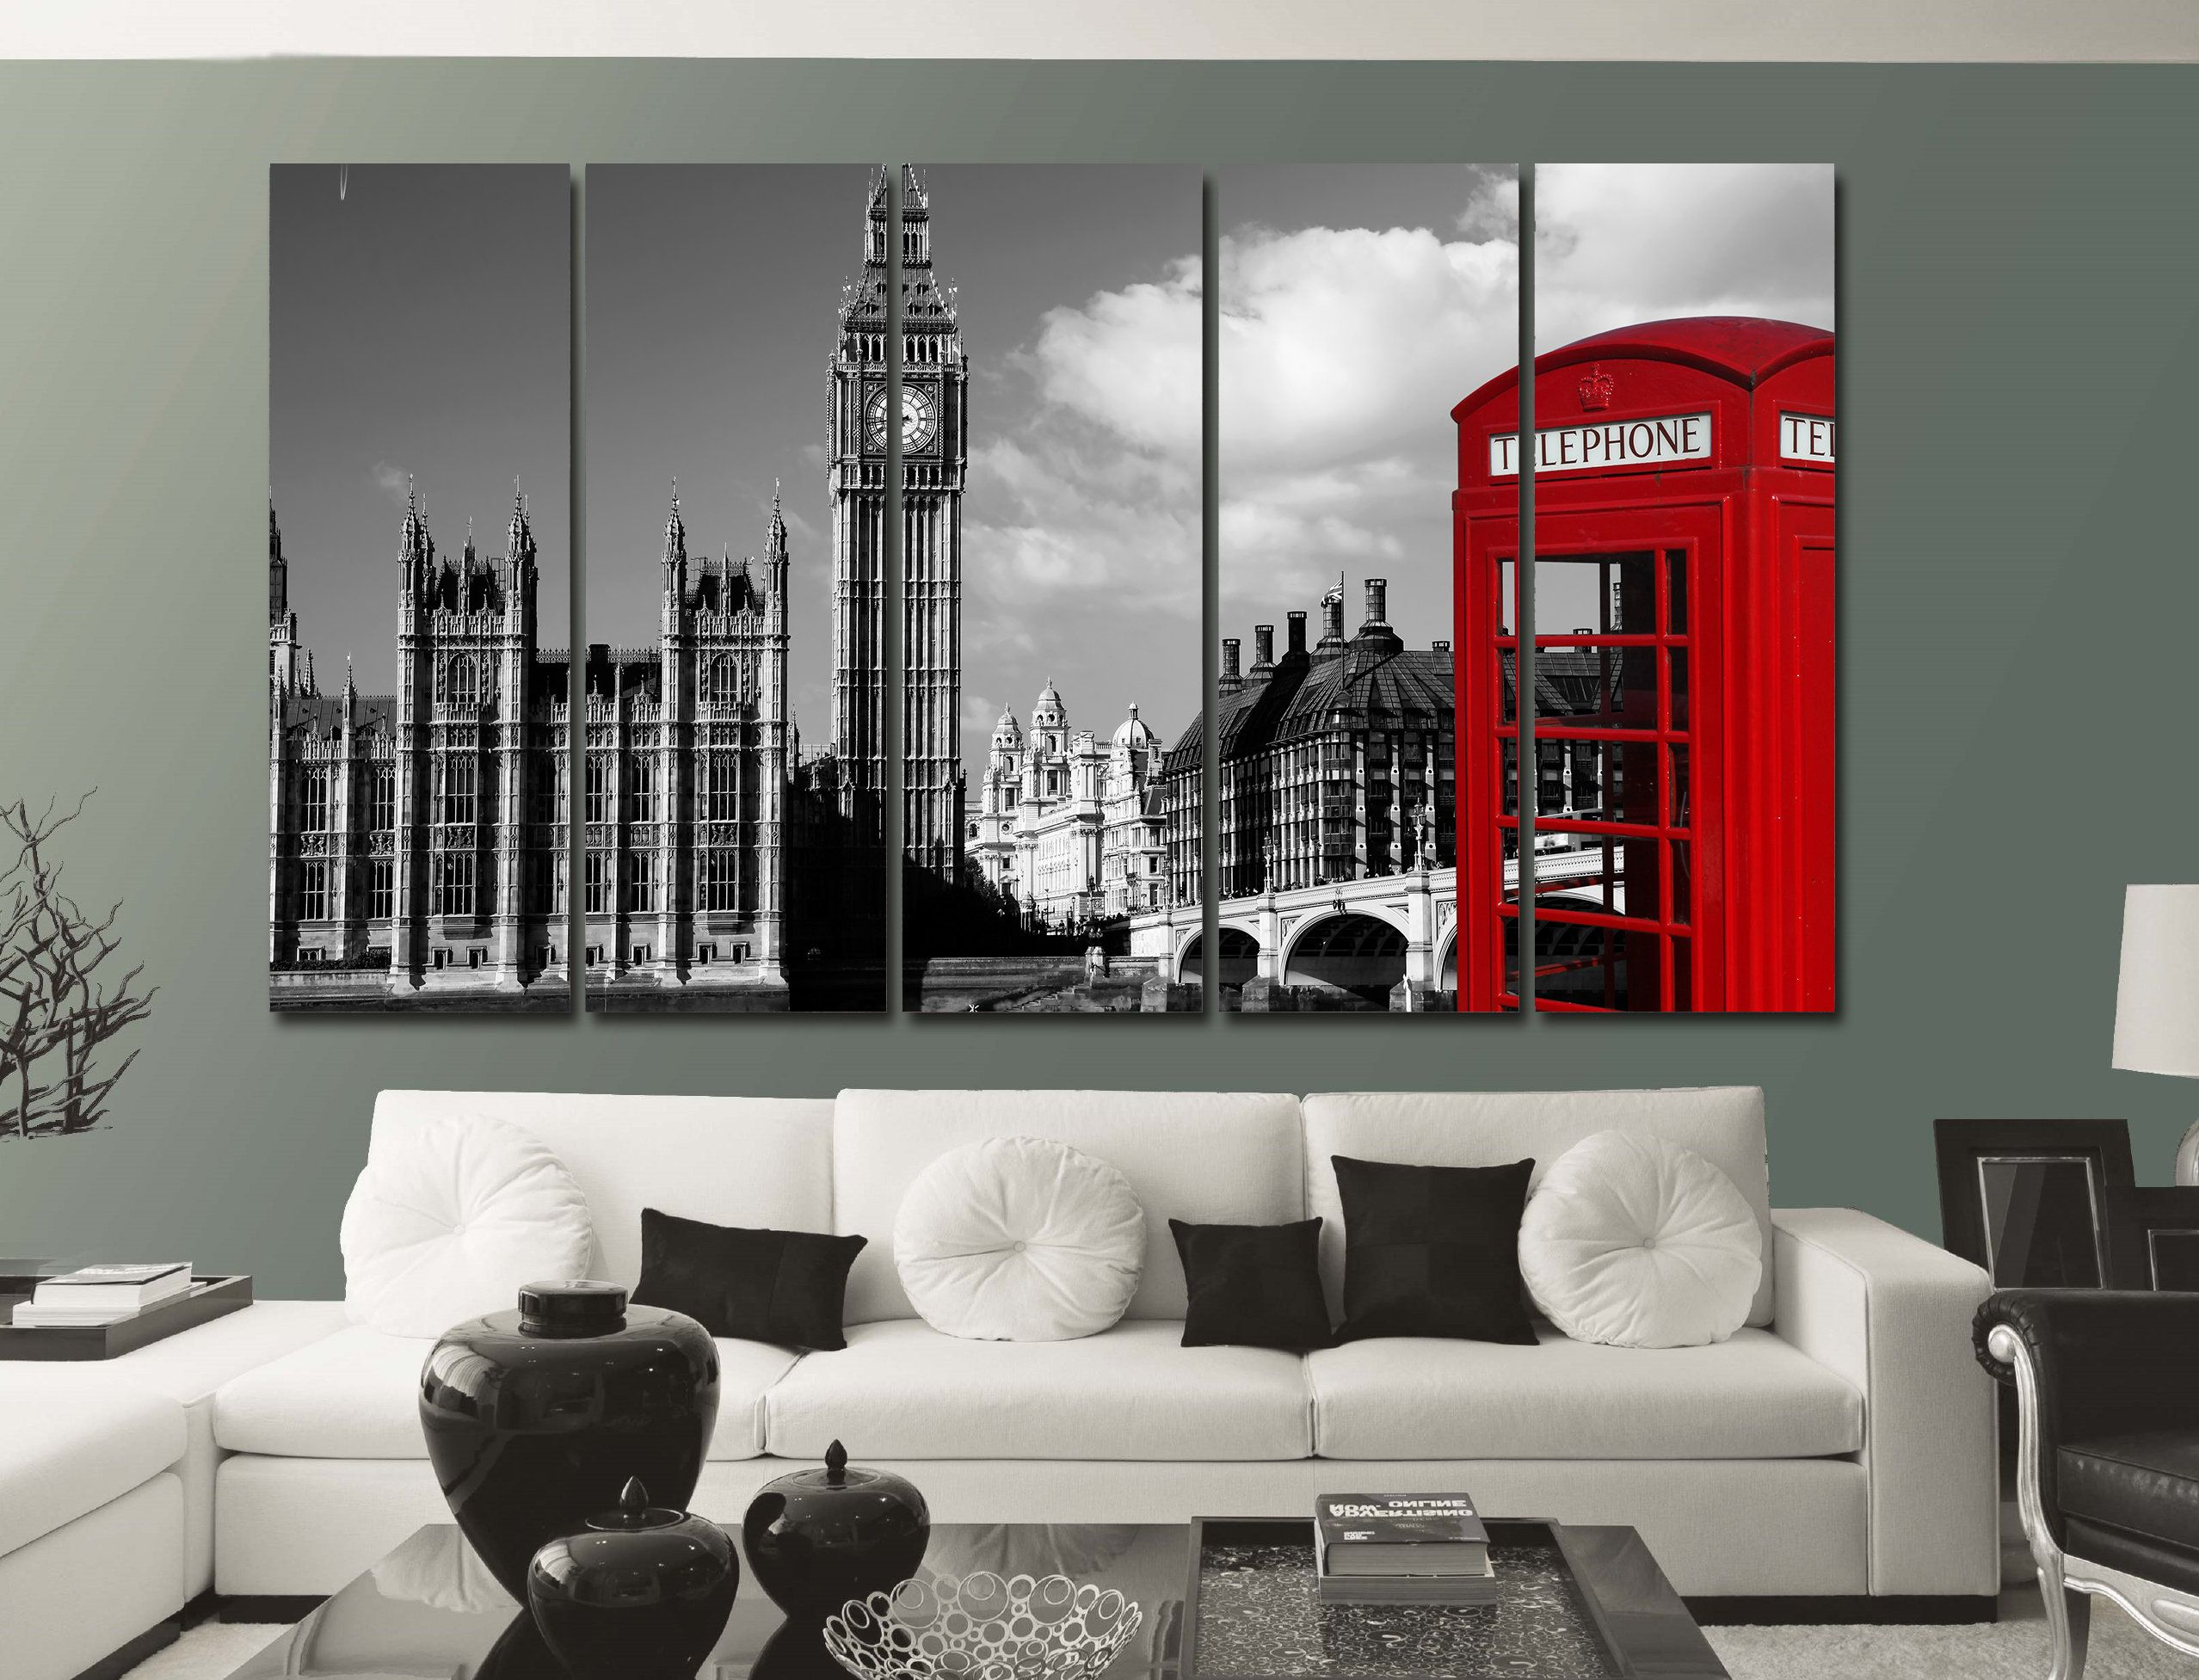 England Printed Canvas London Canvas Retro Red Phone Booth Etsy London Home Decor White Wall Decor White Canvas Art